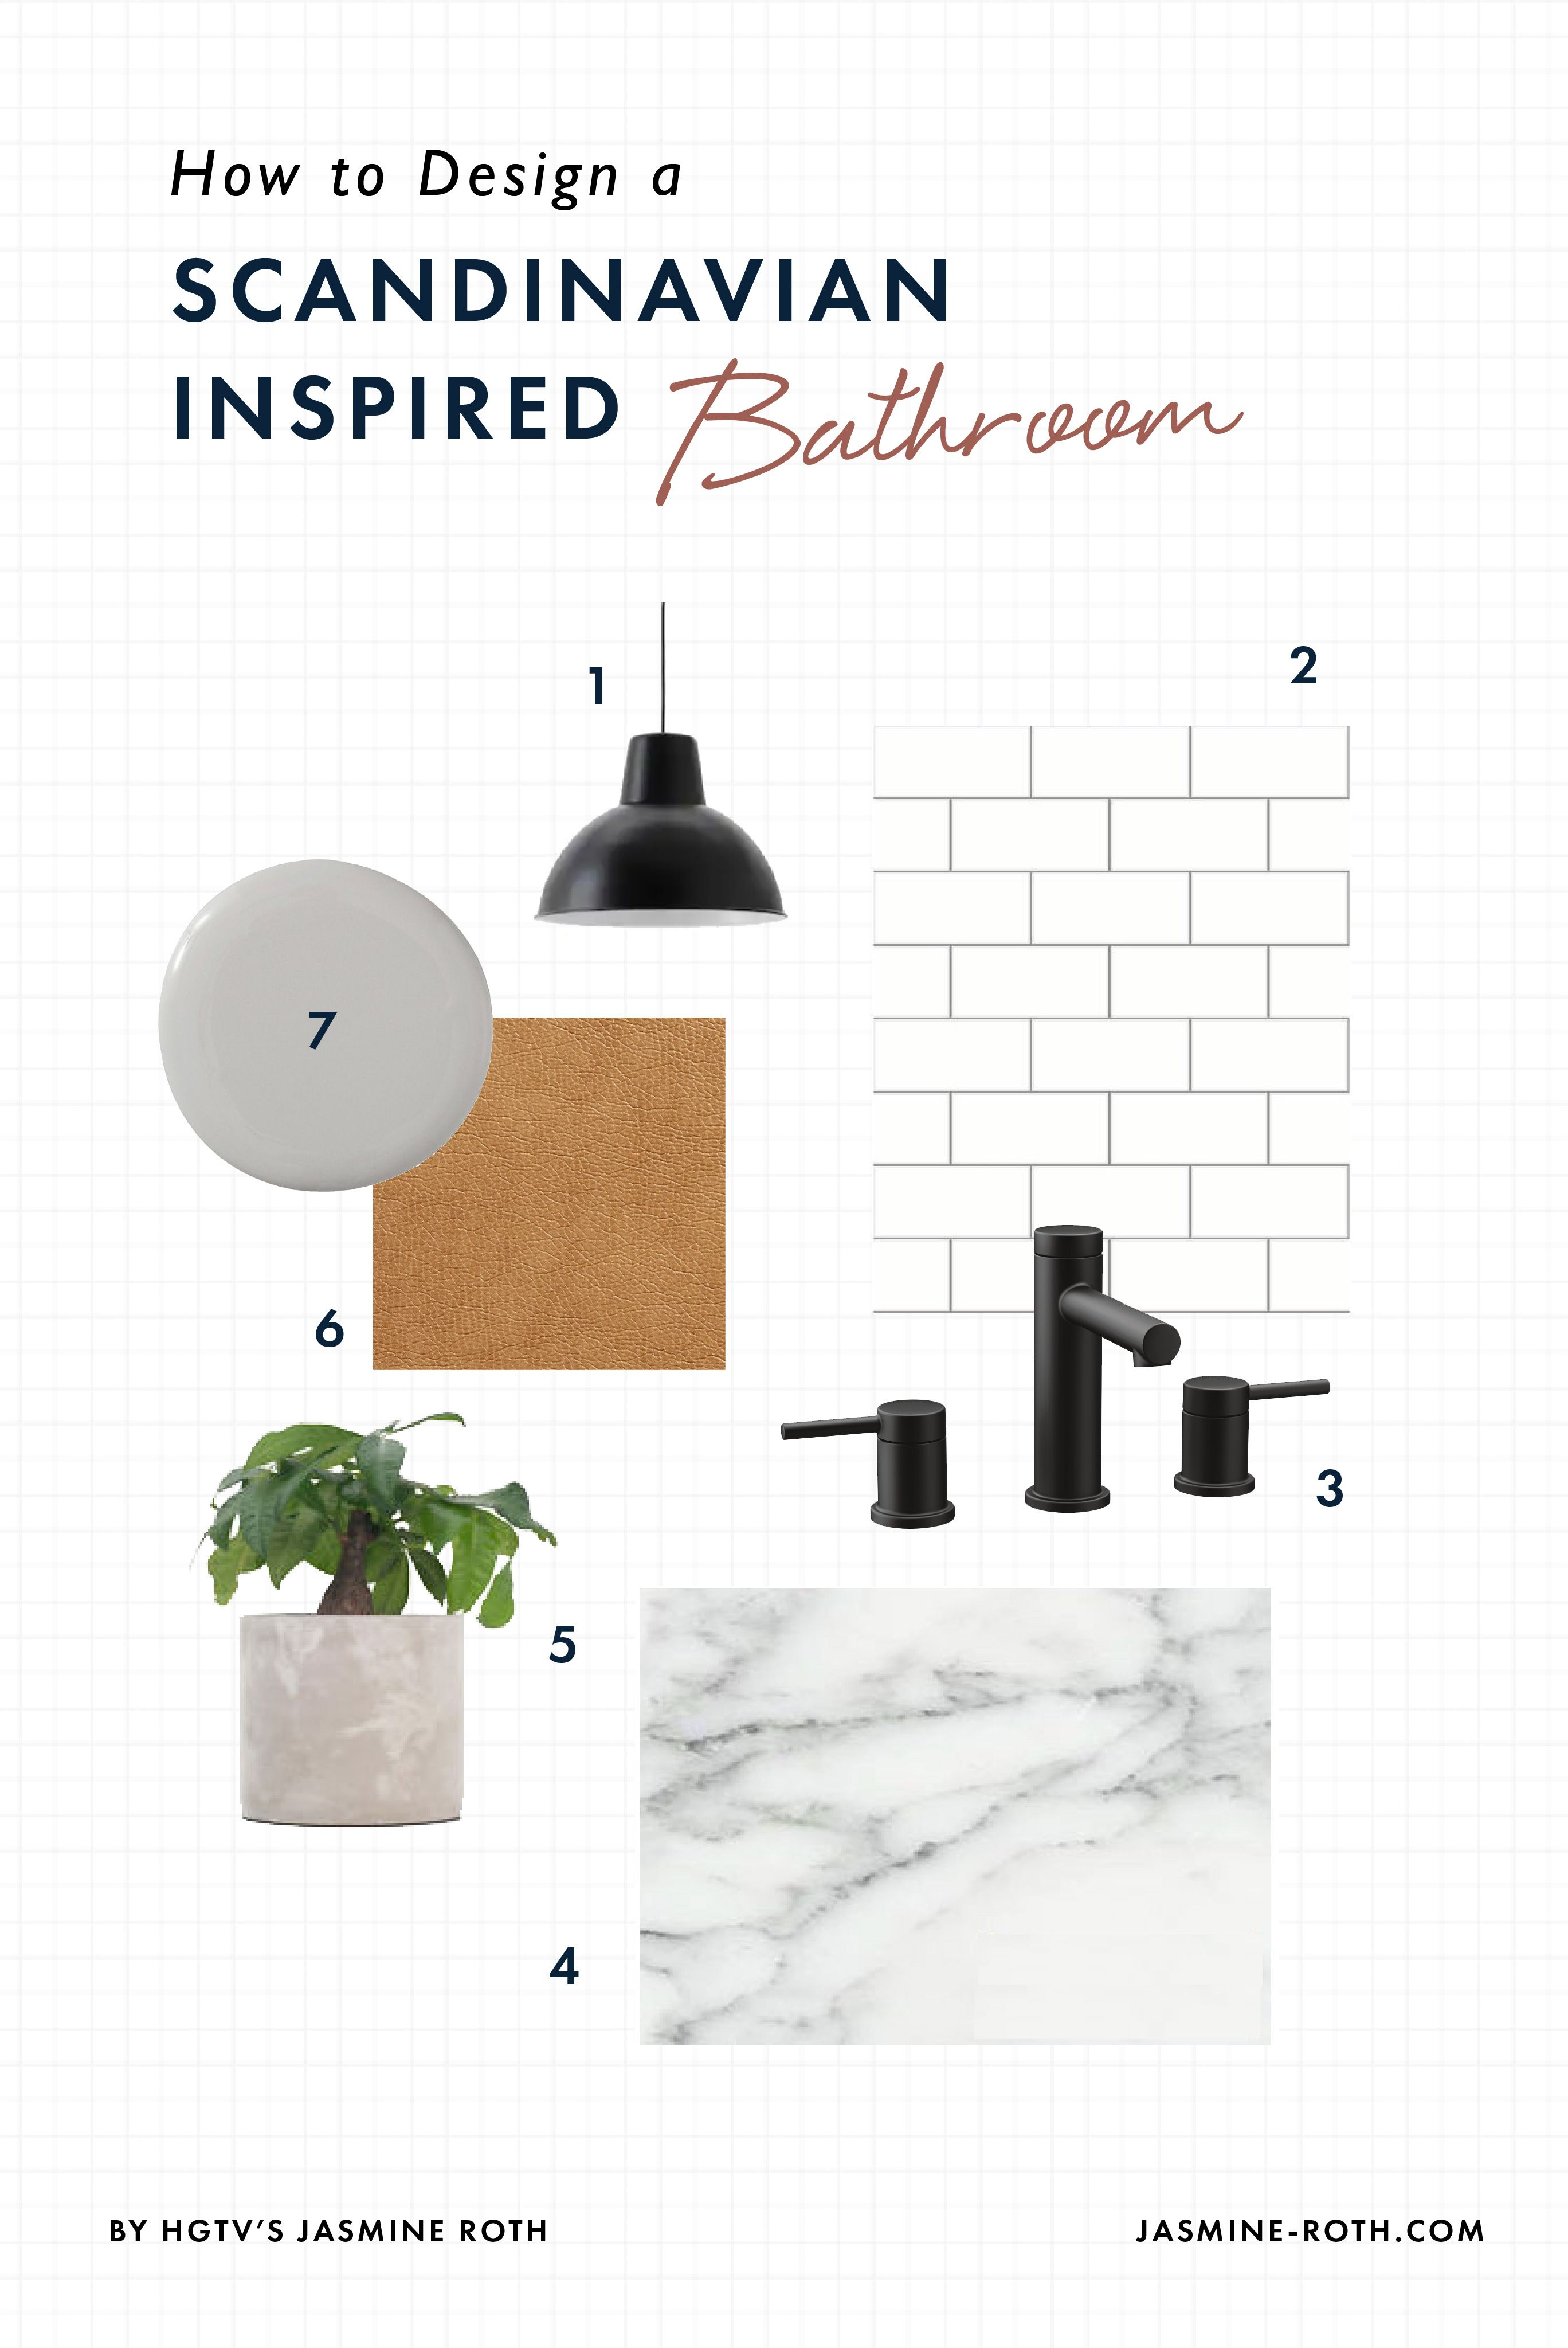 How To Use Scandinavian Style In Your Interior Design The Blog By Jasmine Roth In 2020 Scandinavian Decor Living Room Scandinavian Style Interior Scandinavian Style